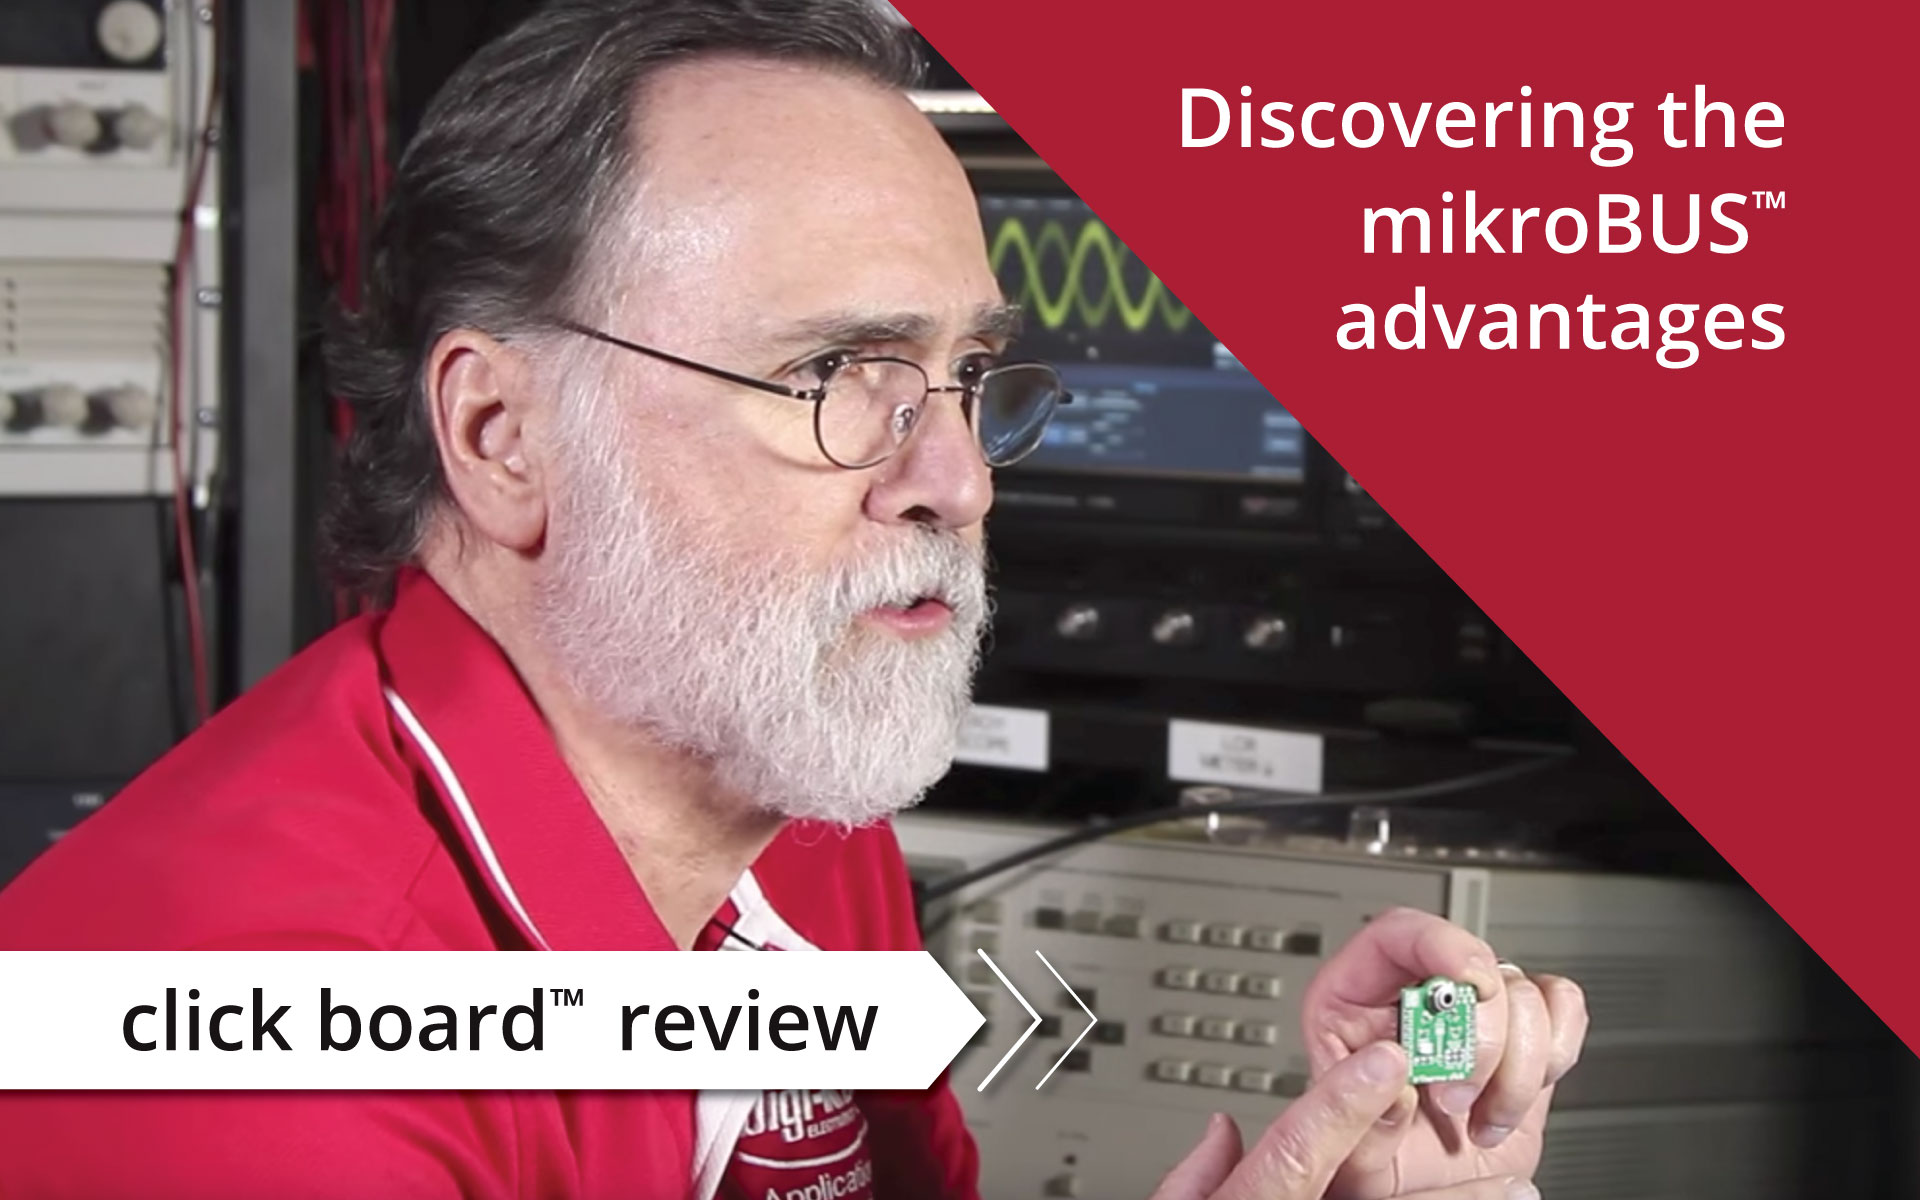 Discovering click boards™ - a video review you need to see